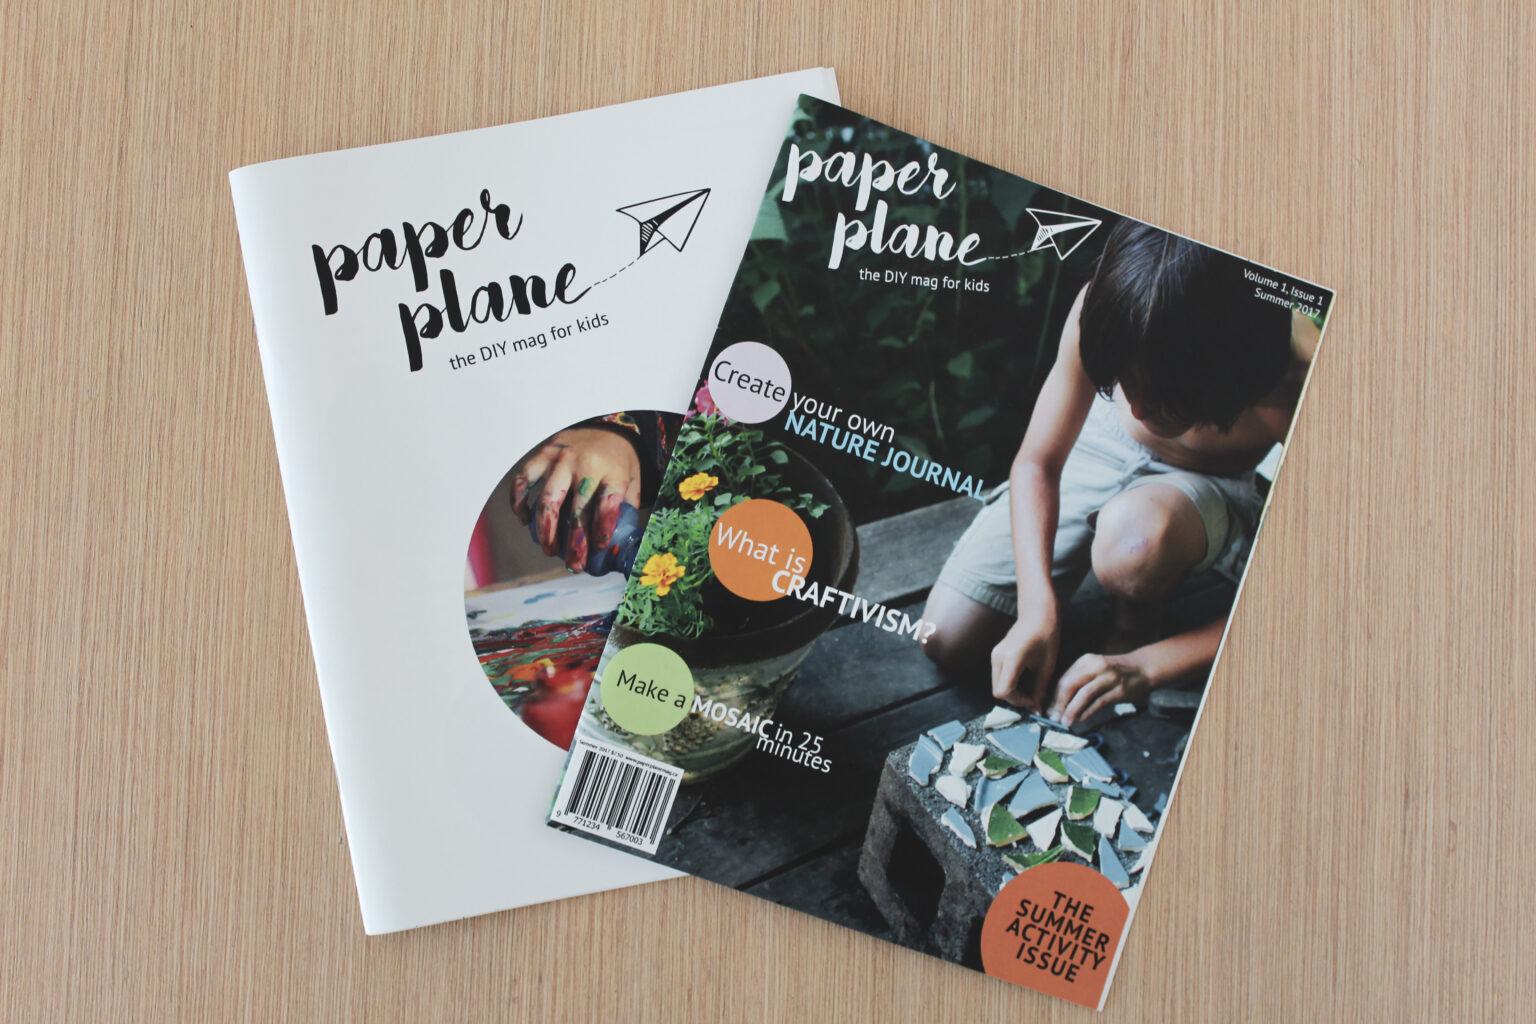 Paper Plane project materials – front covers